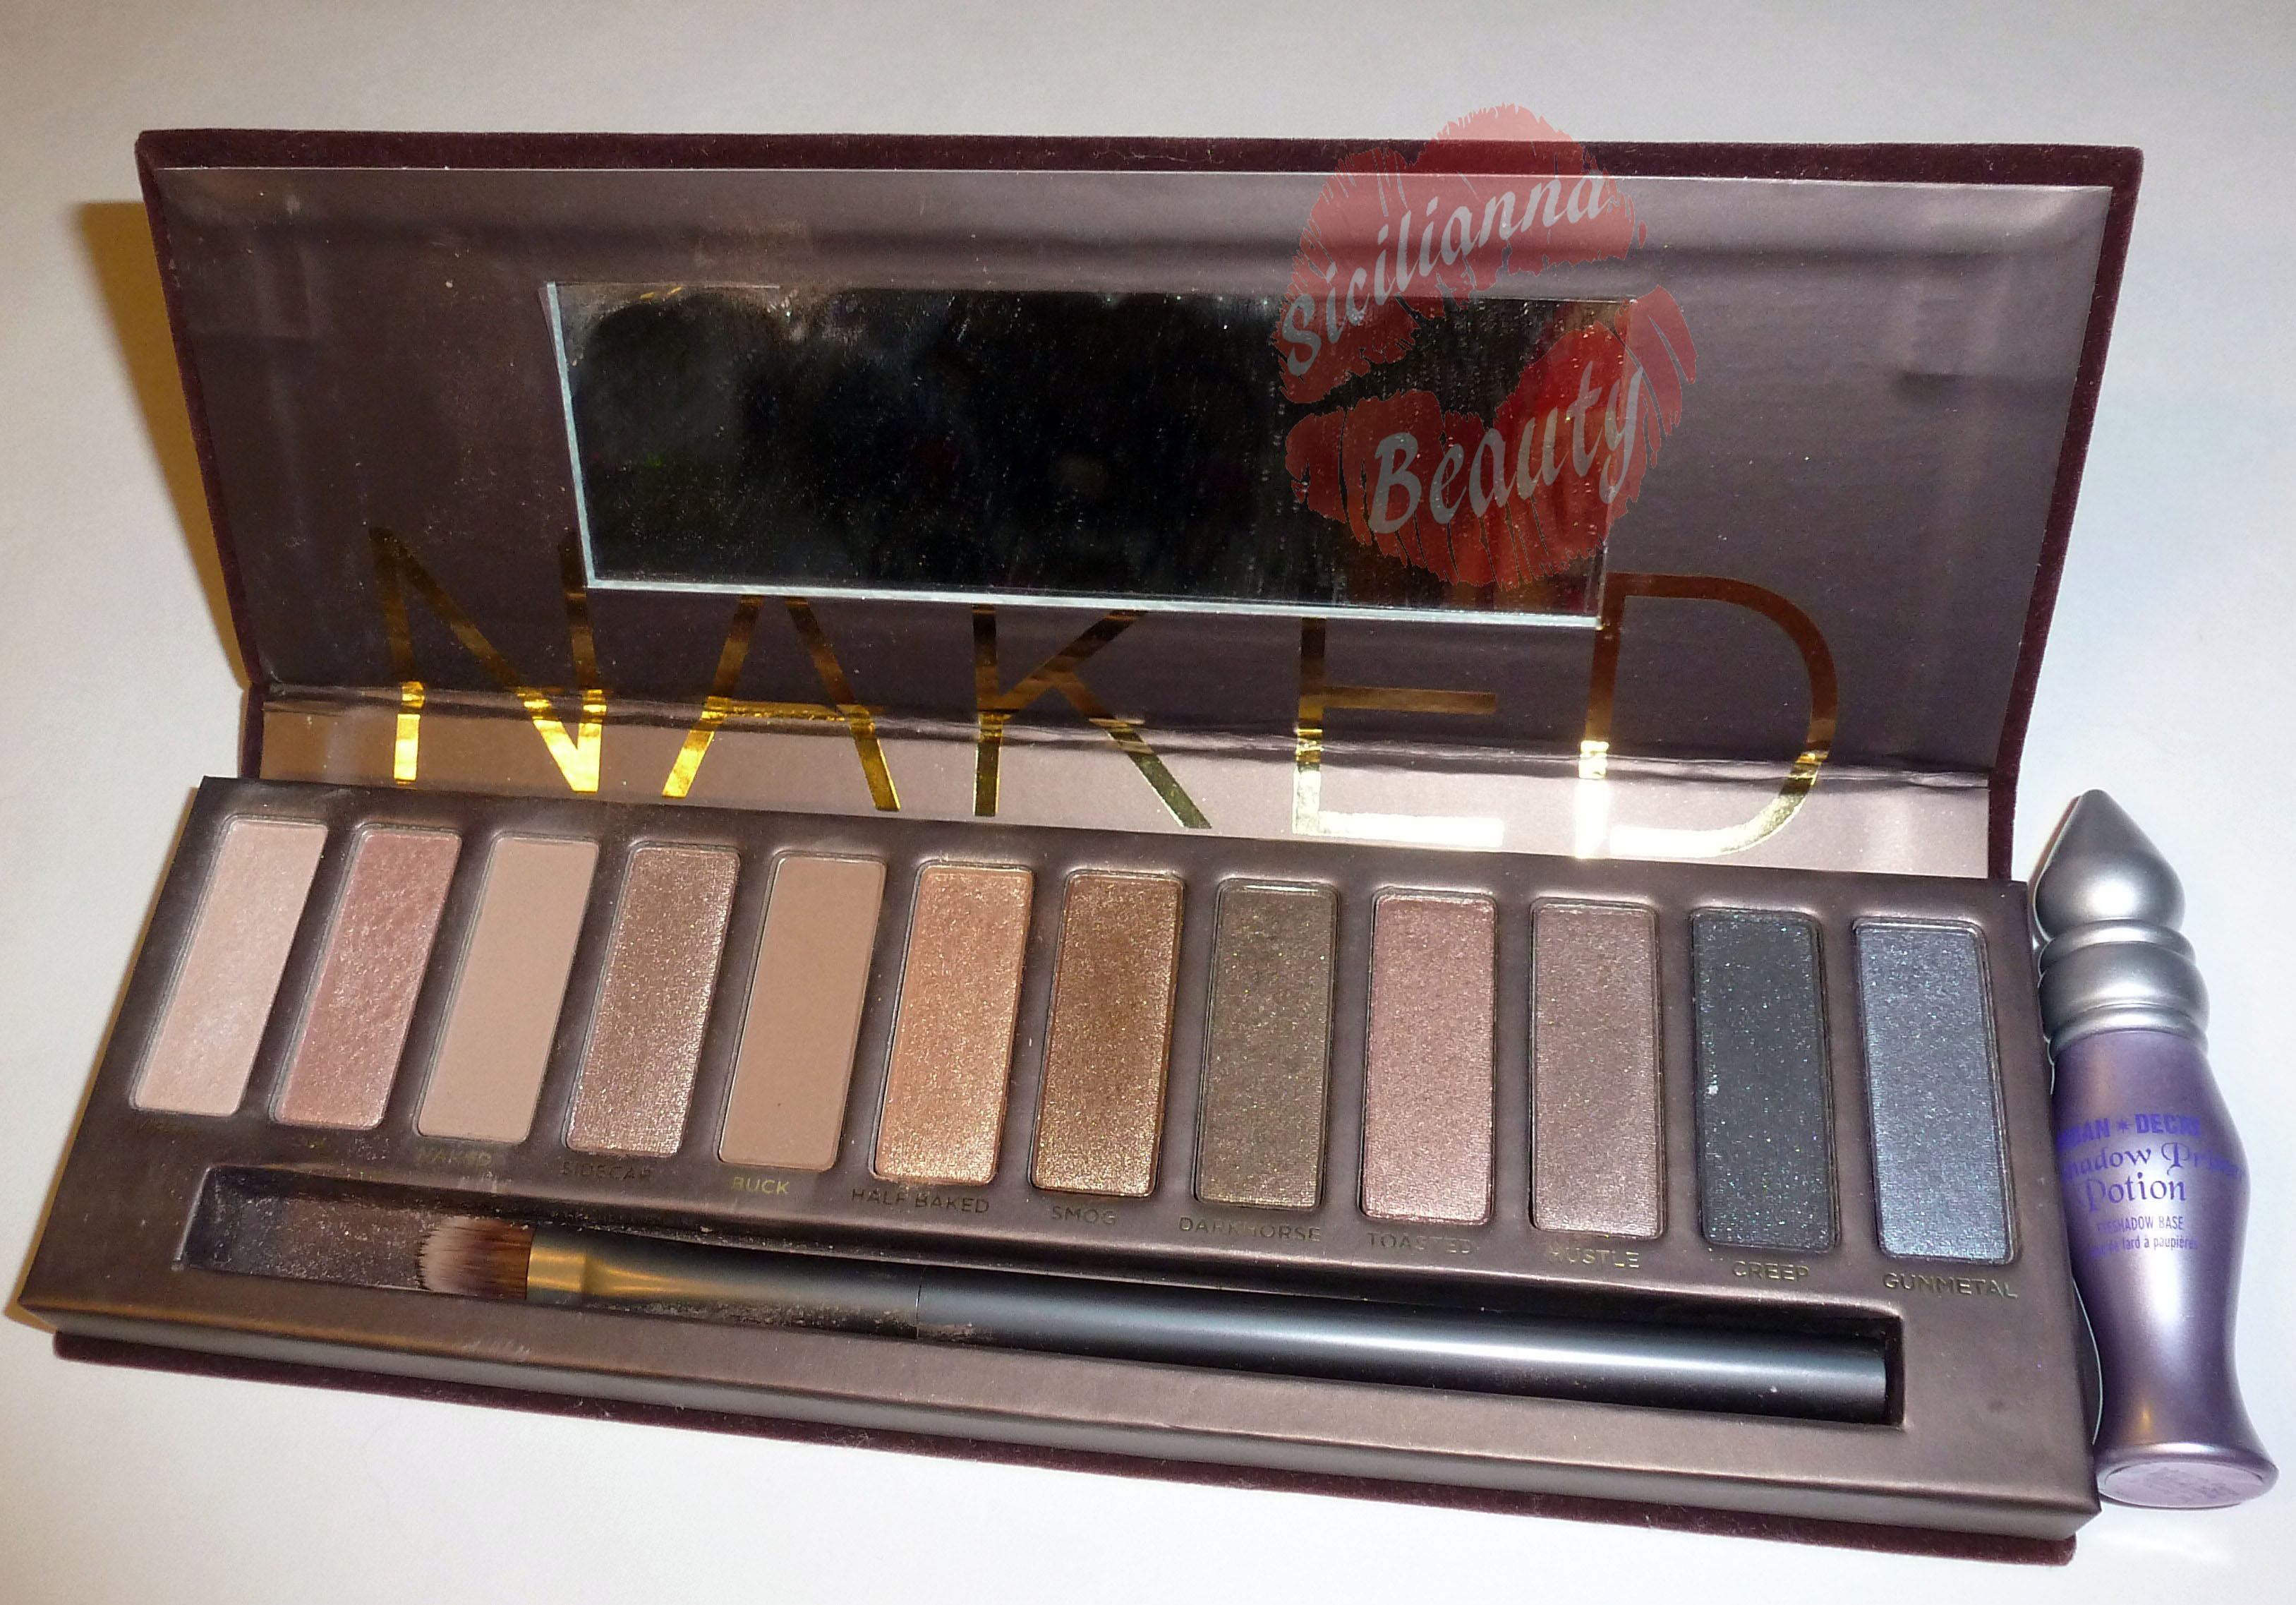 REVIEW: Urban Decay Naked (1) Palette